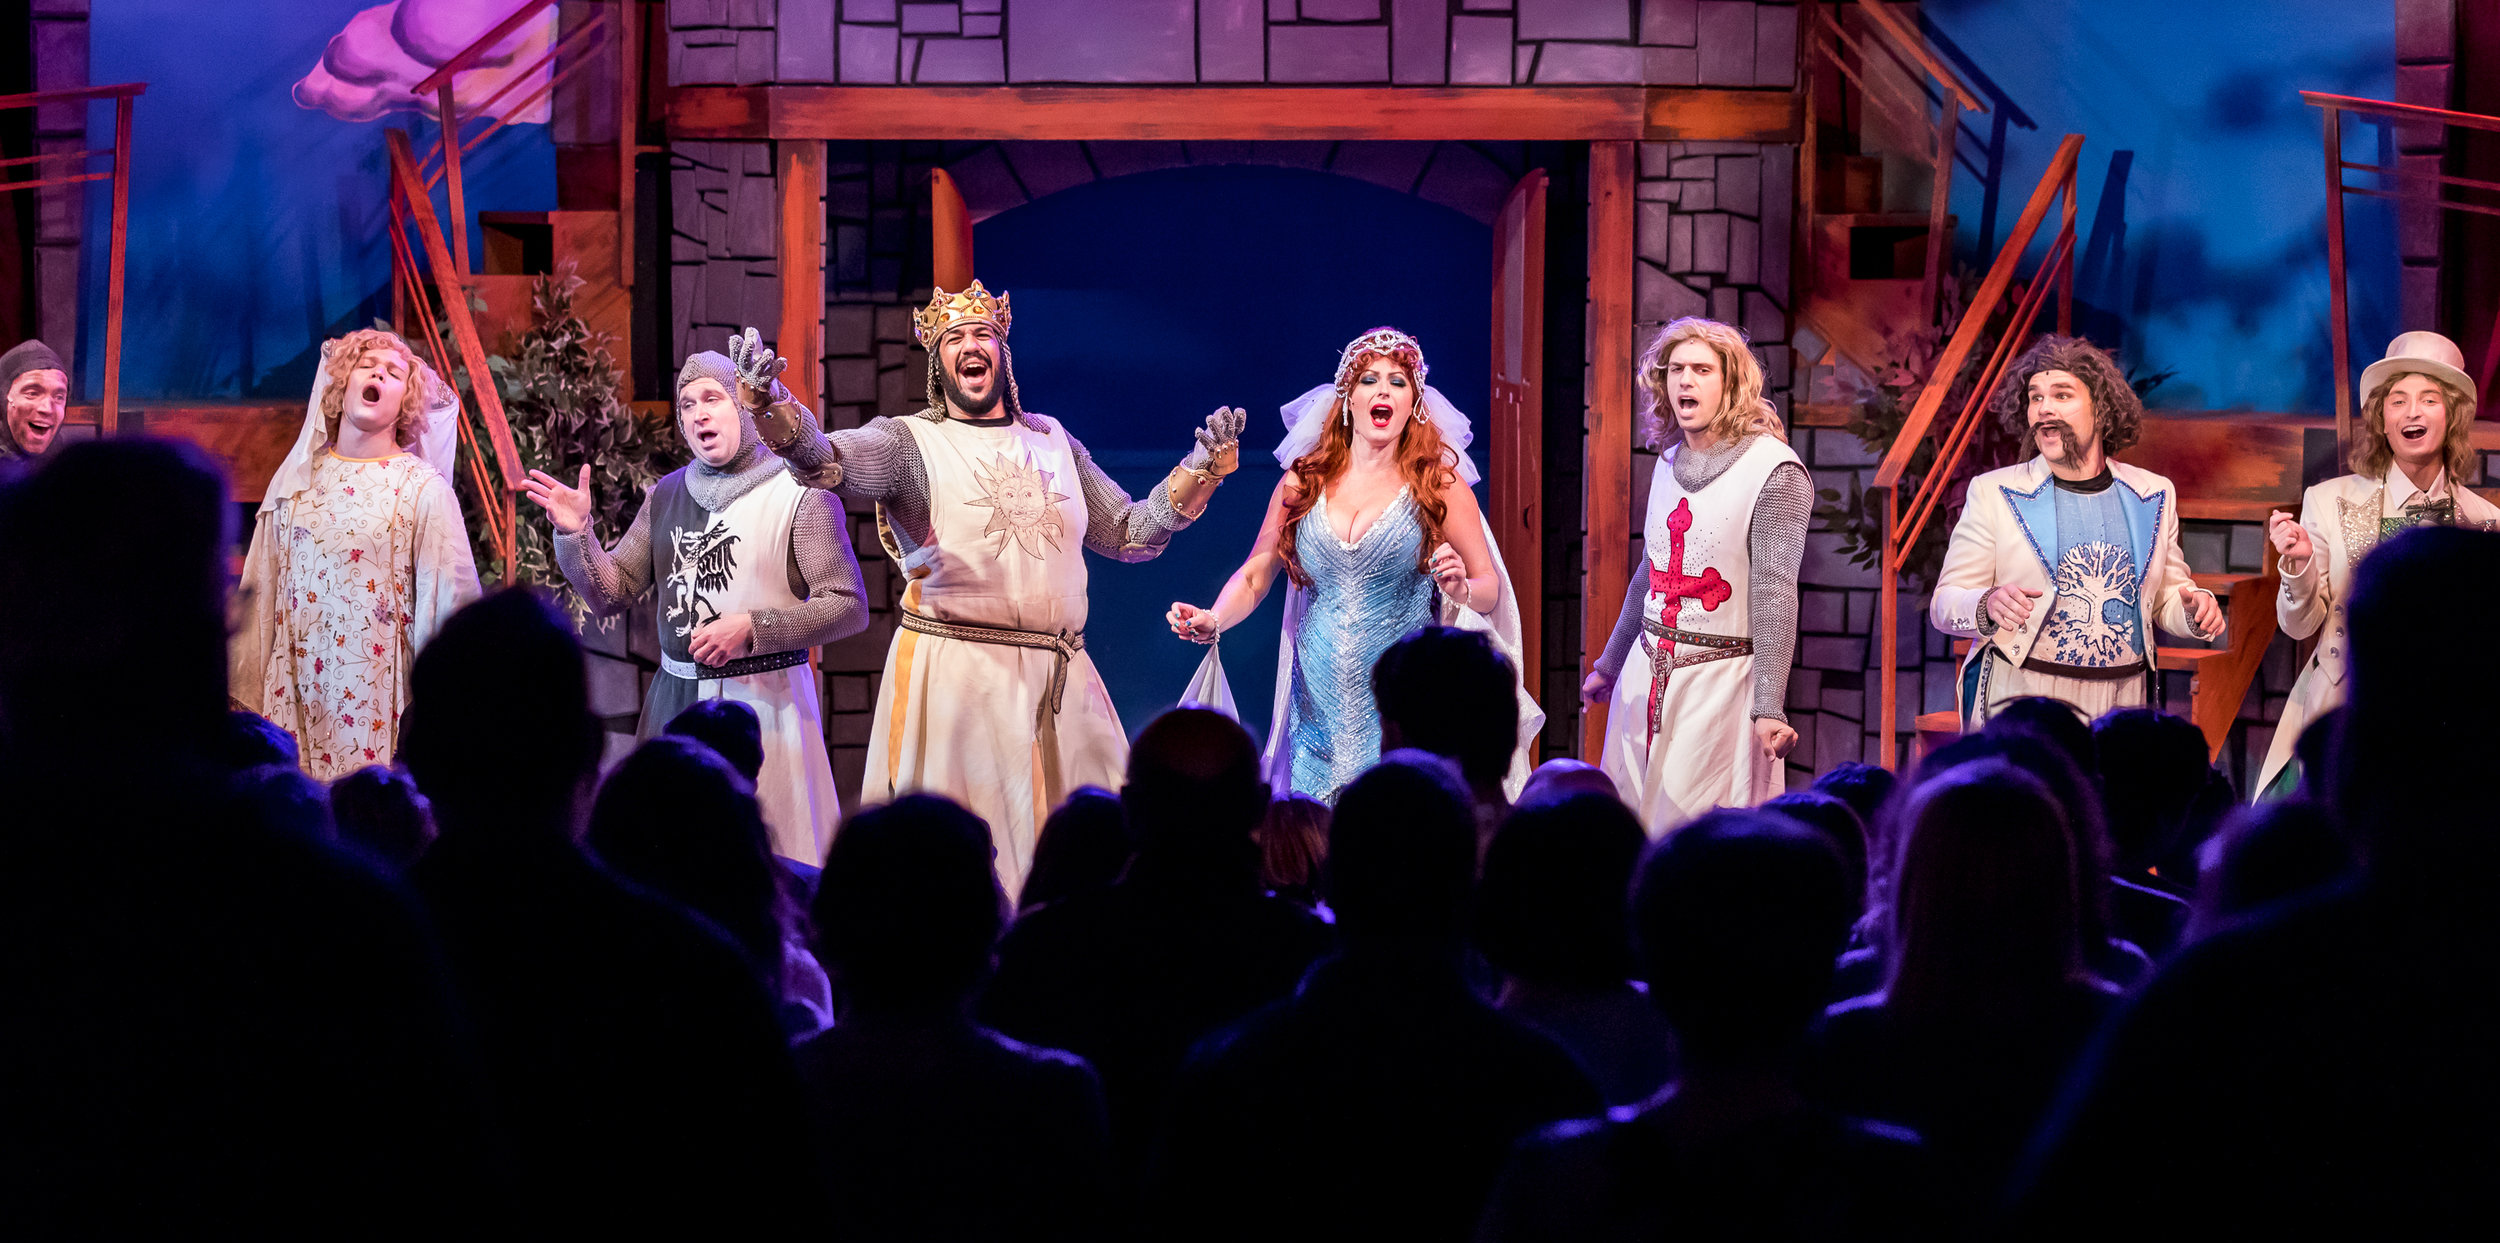 SpamalotActlI_Selects_HiRes_465A1510.jpg